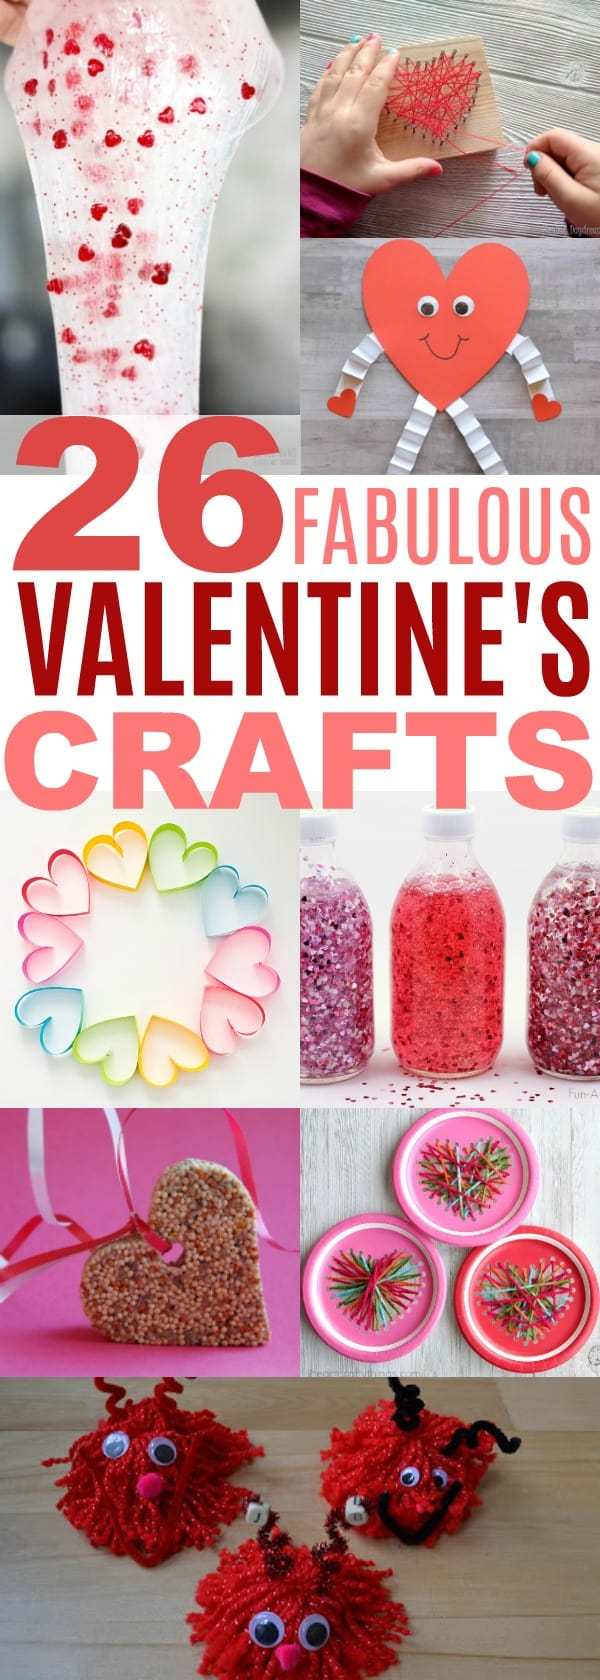 26 Valentine's Day Ideas for Kids Crafts. Make fabulous crafts for gifts,, decor or just plain fun.